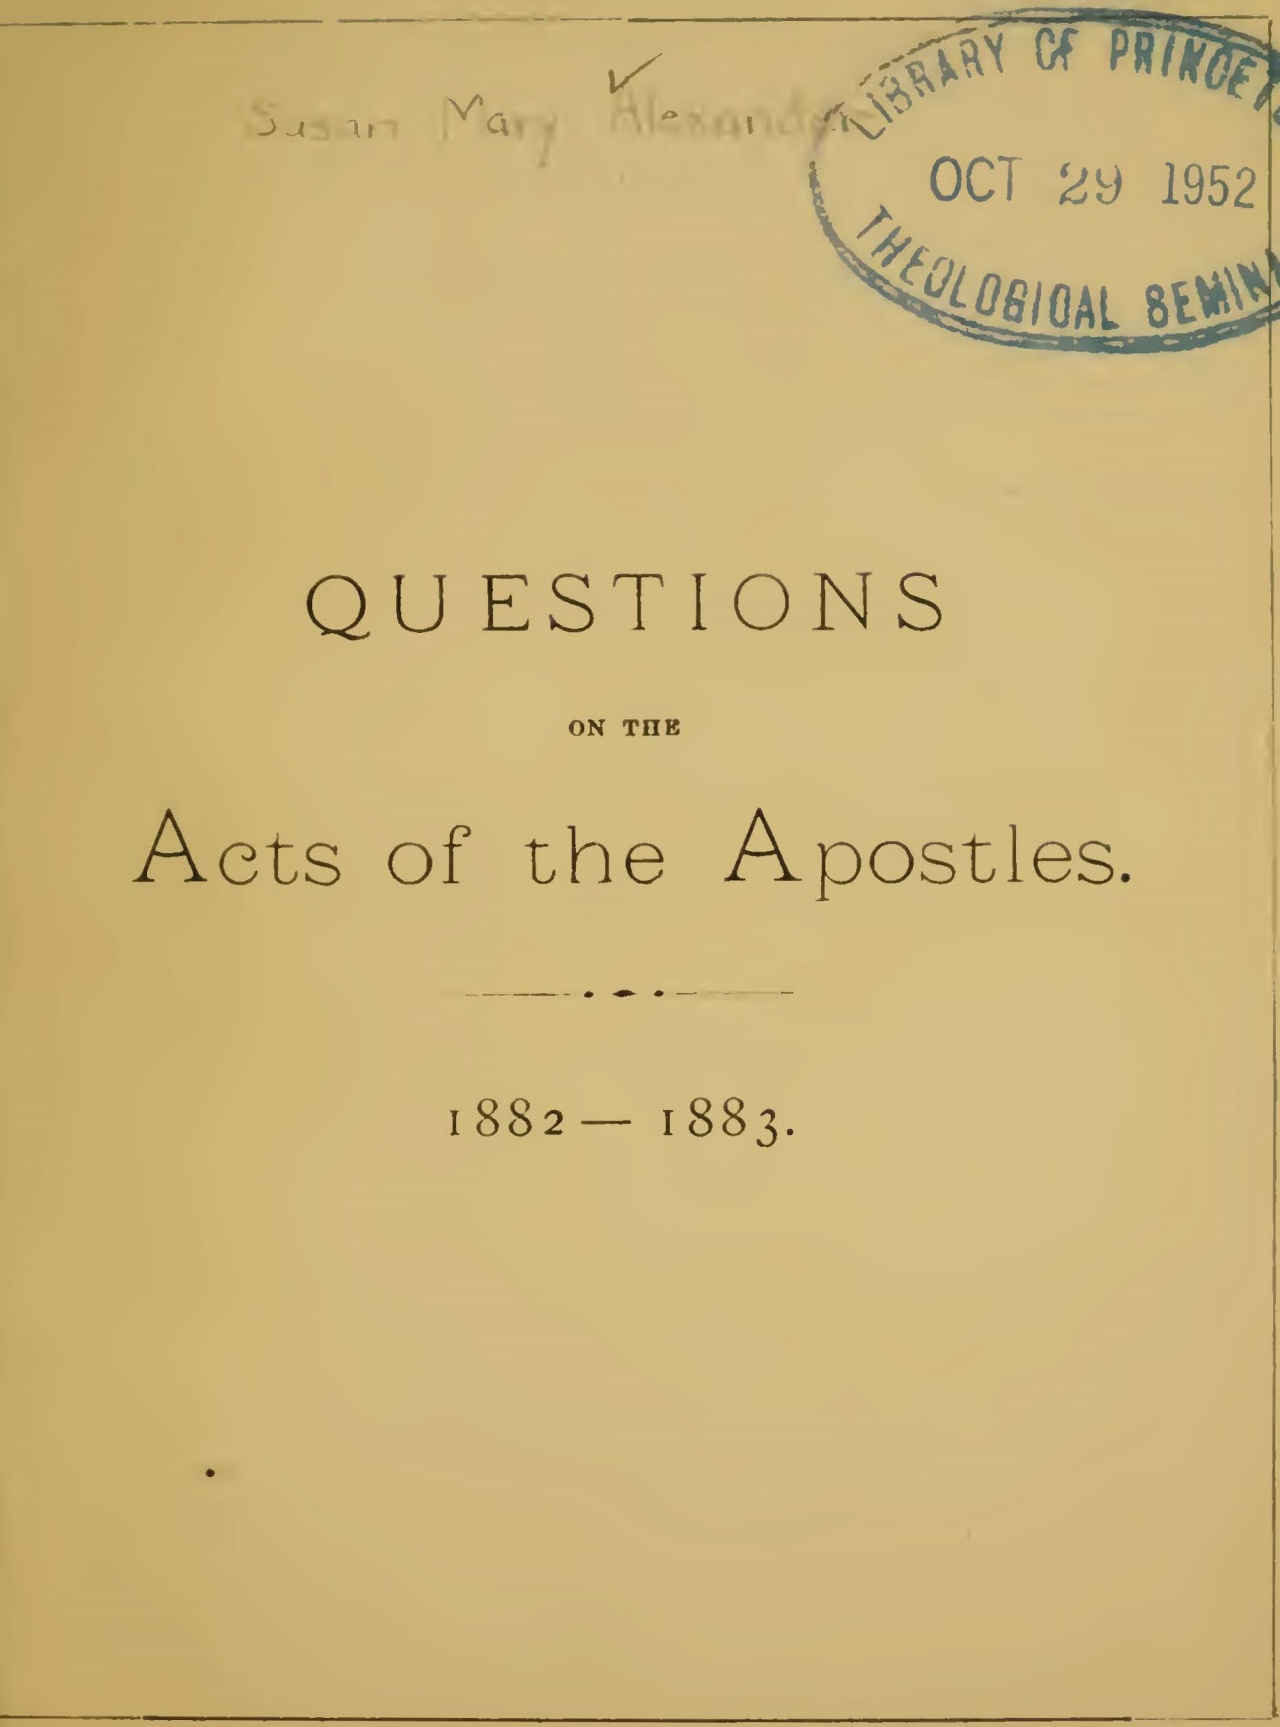 Alexander, Susan Mary Brown, Questions on the Acts of the Apostles Title Page.jpg